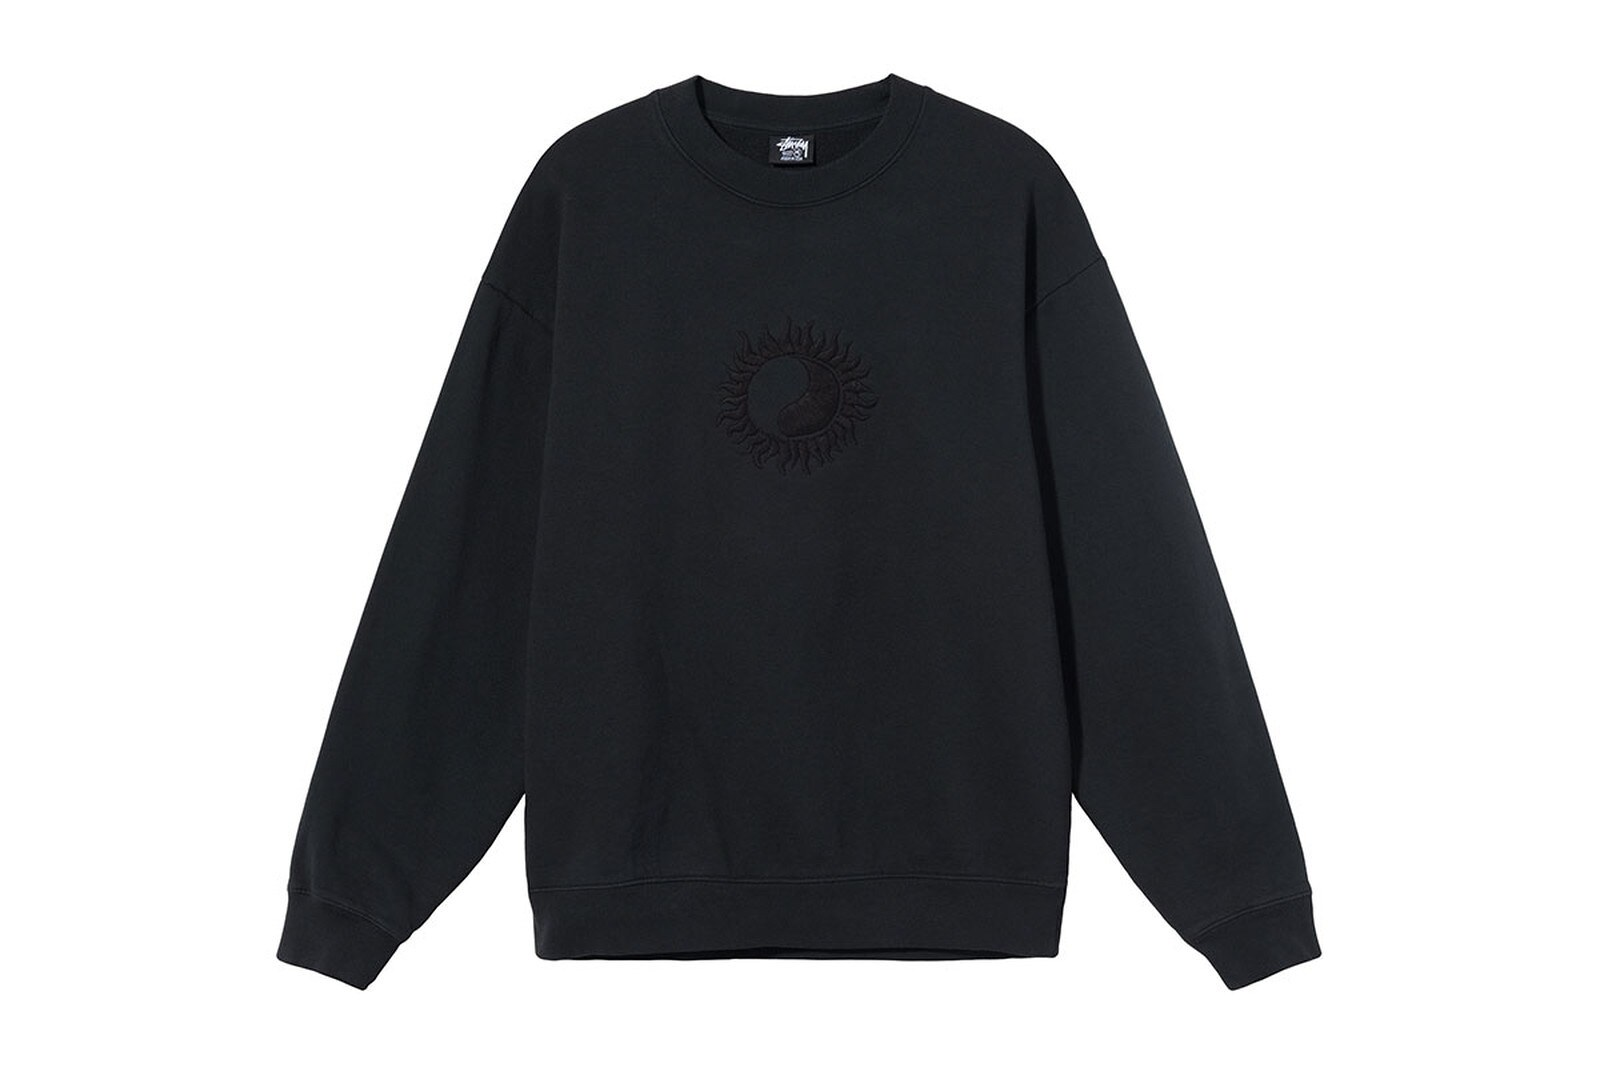 Stussy x Our Legacy